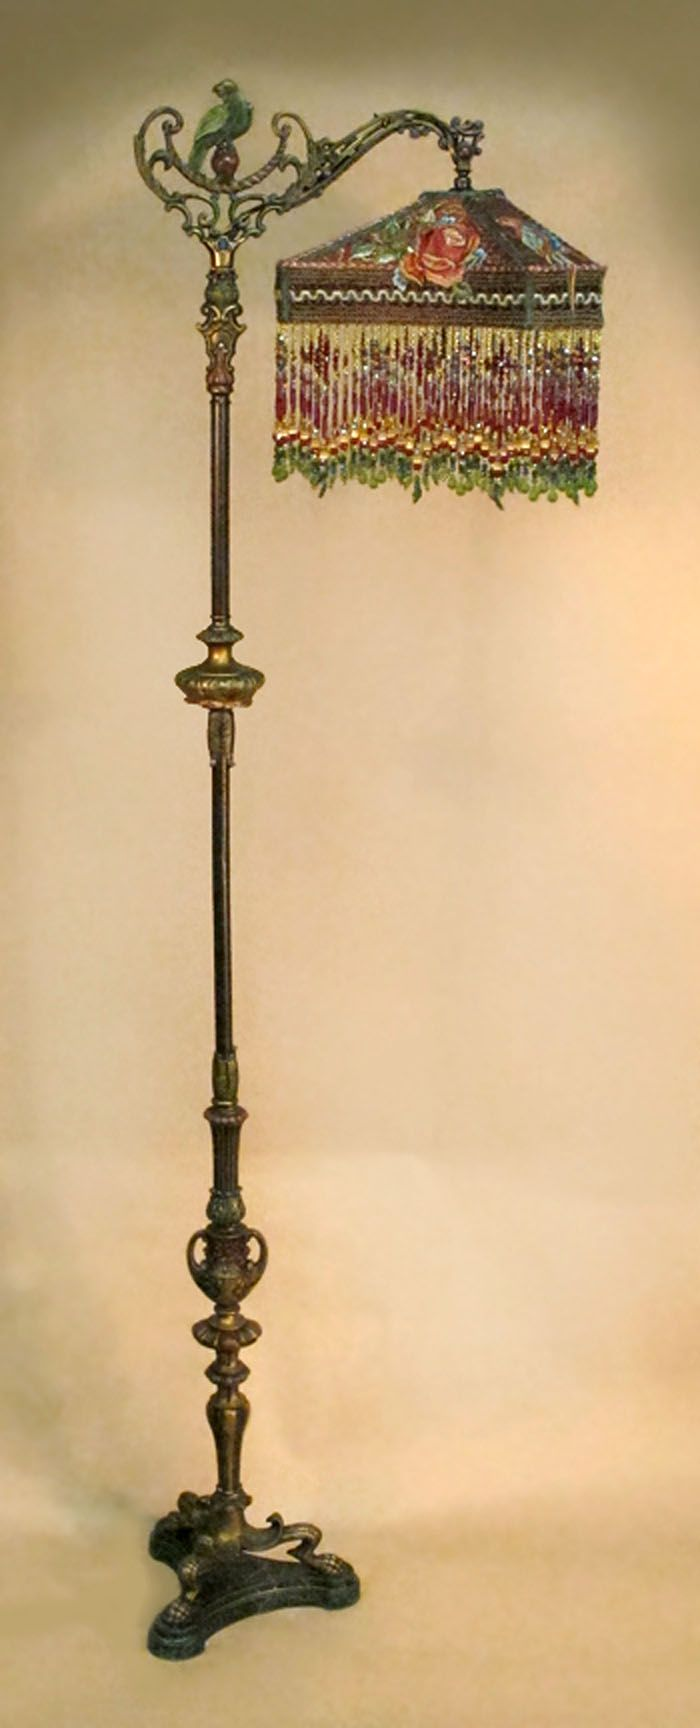 Beaded Floor Lamps: Victorian Beaded Floor Lamp | with one-of-a-kind beaded victorian lamp,Lighting